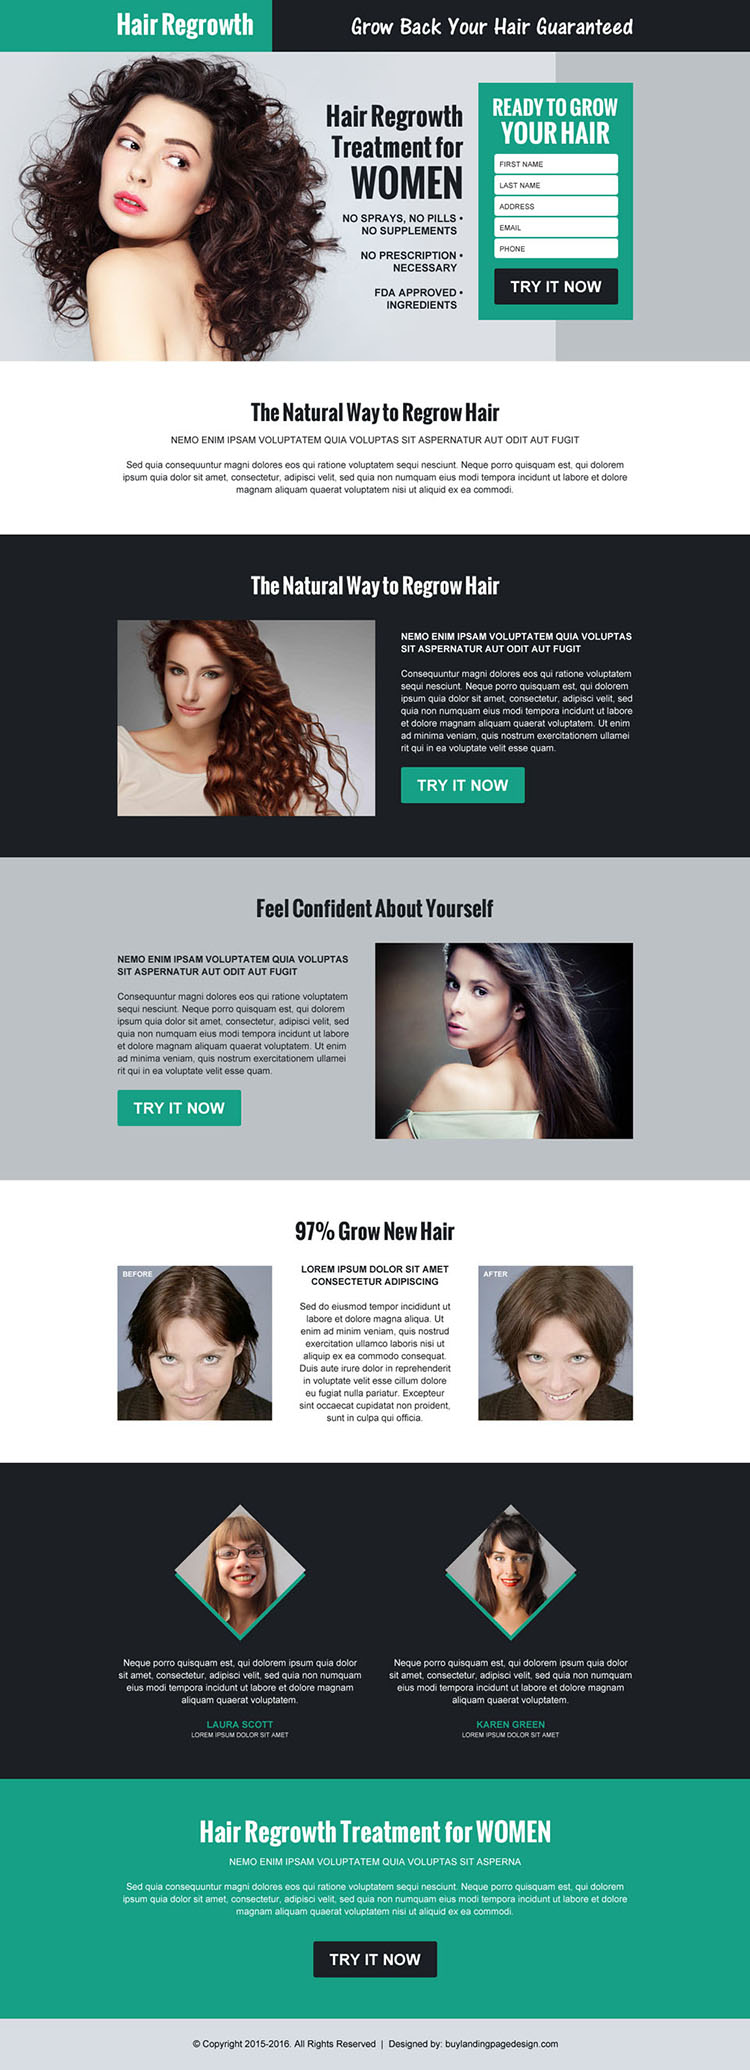 hair regrowth product selling lead capture landing page design